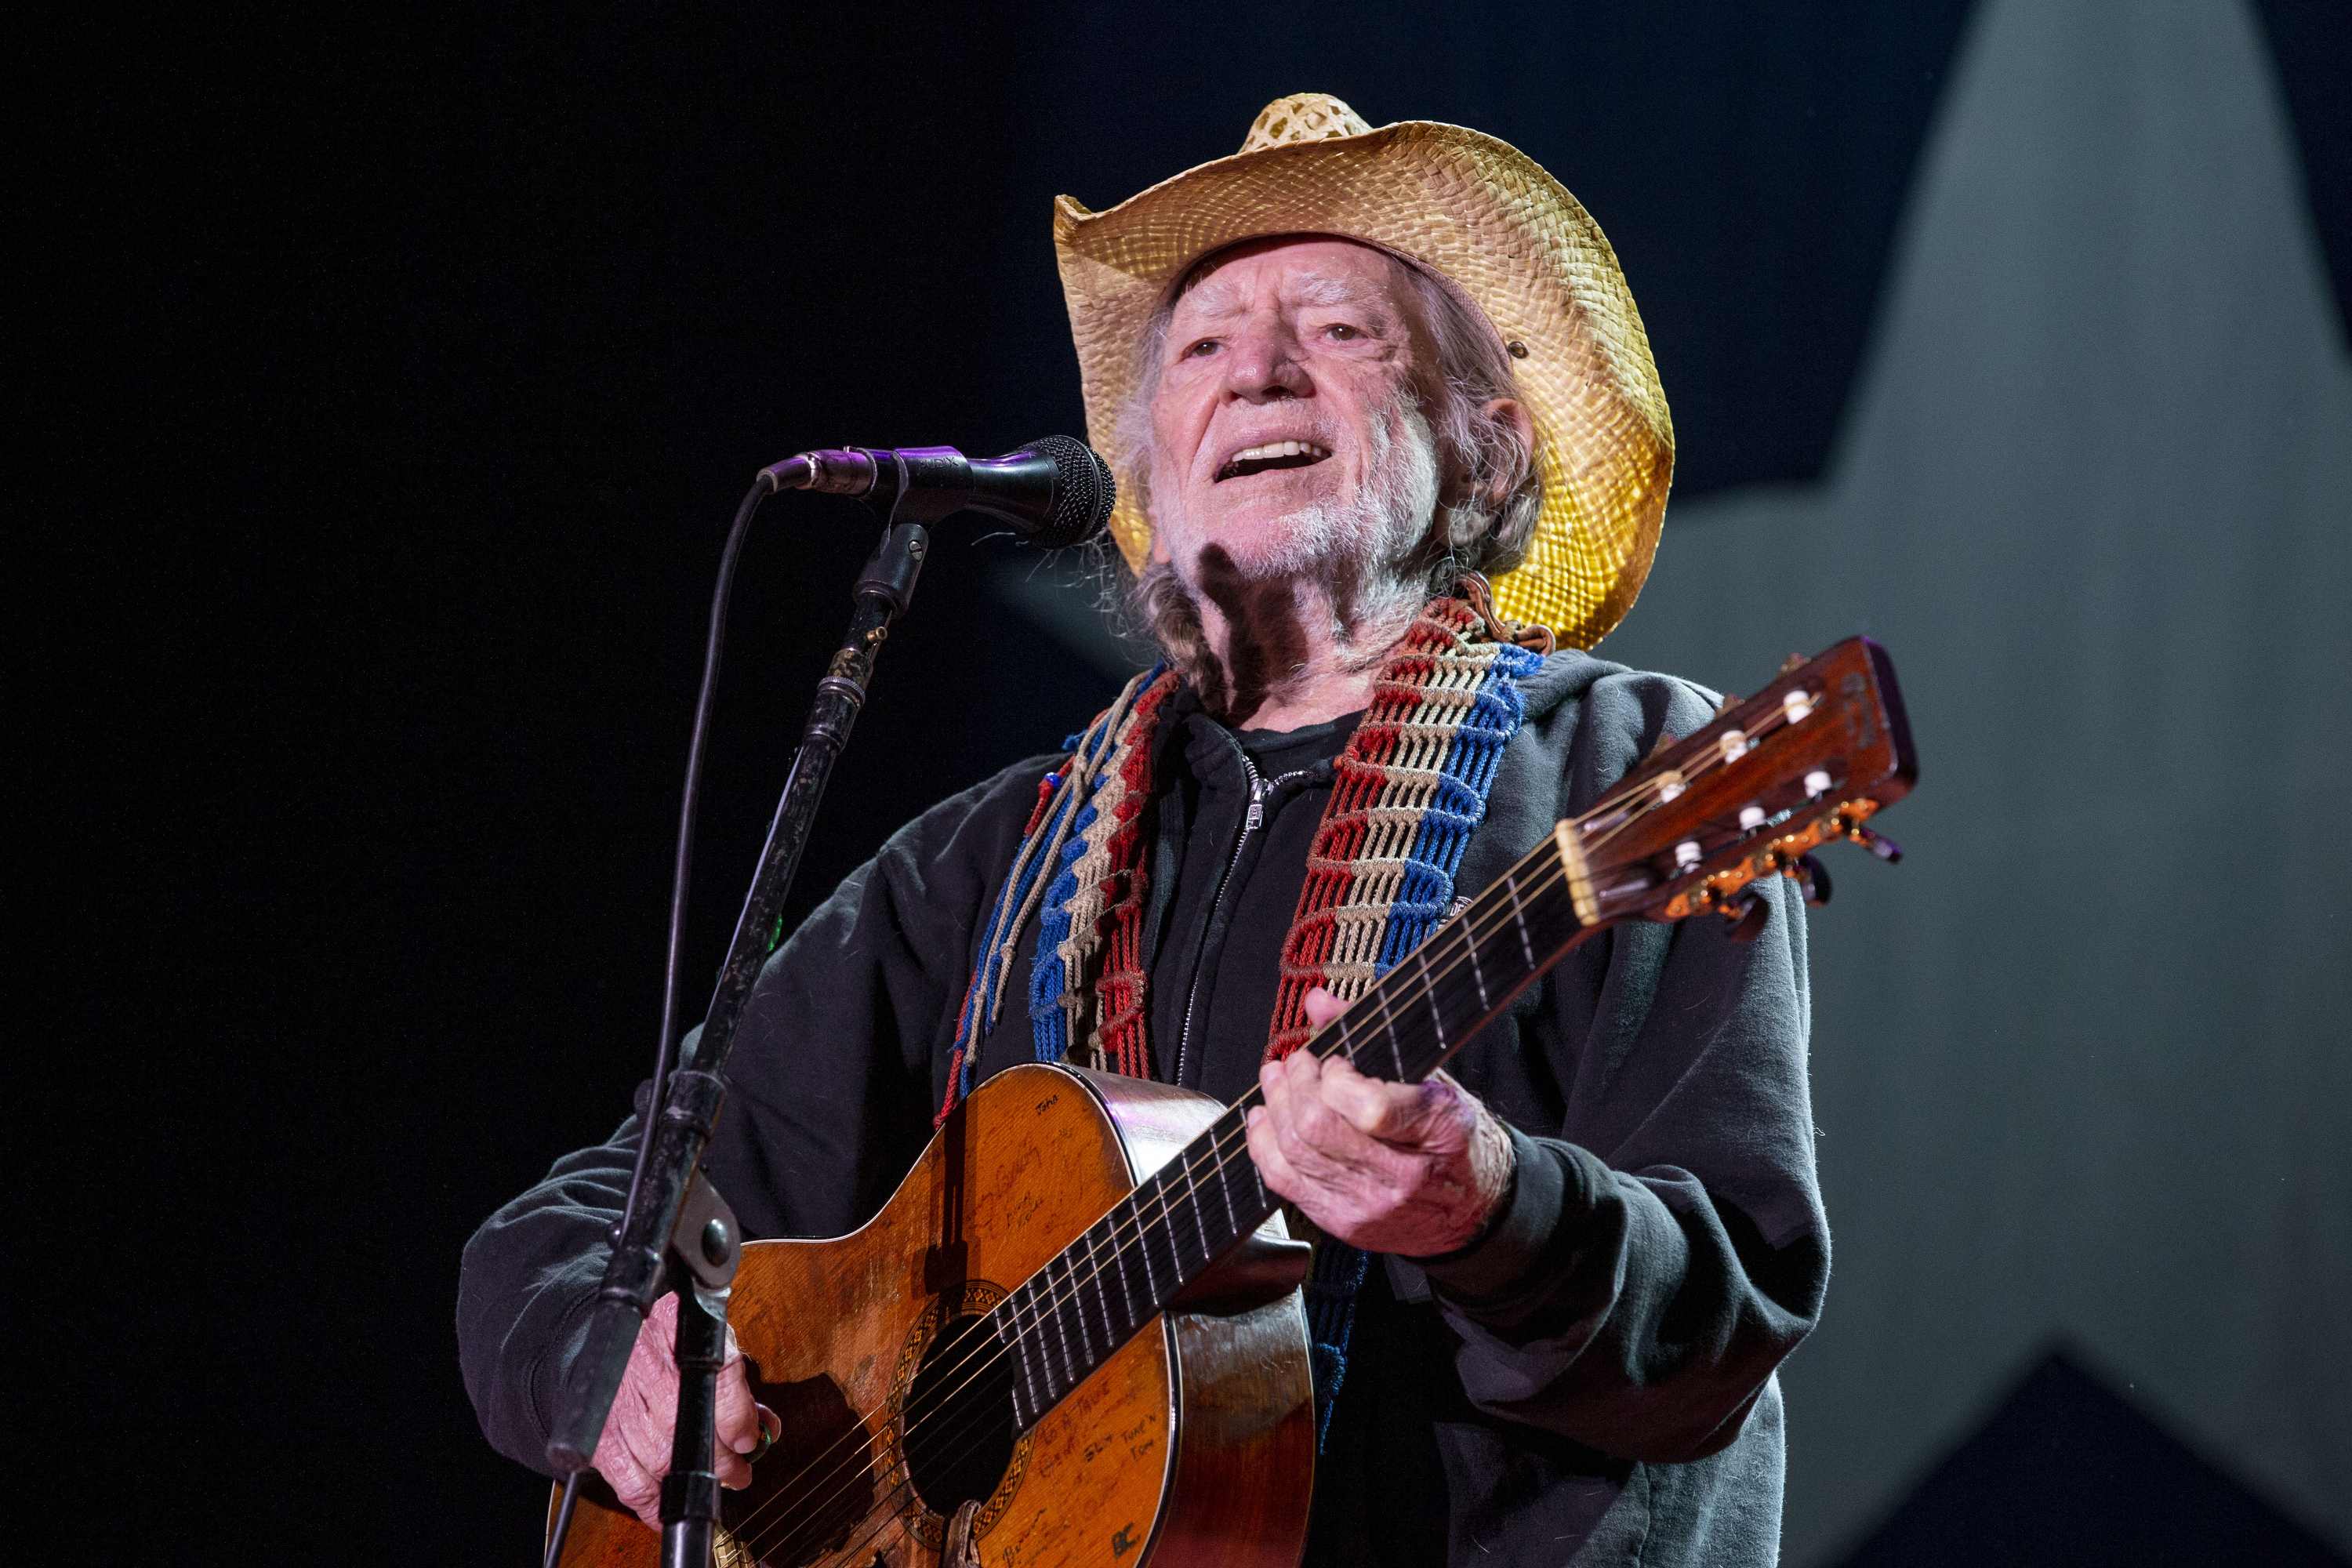 Willie Nelson, seen here at the 2018 Outlaw Music Festival, will perform at the new Fillmore New Orleans nightclub on Feb. 27. (Photo by Mark Pynes | mpynes@pennlive.com)